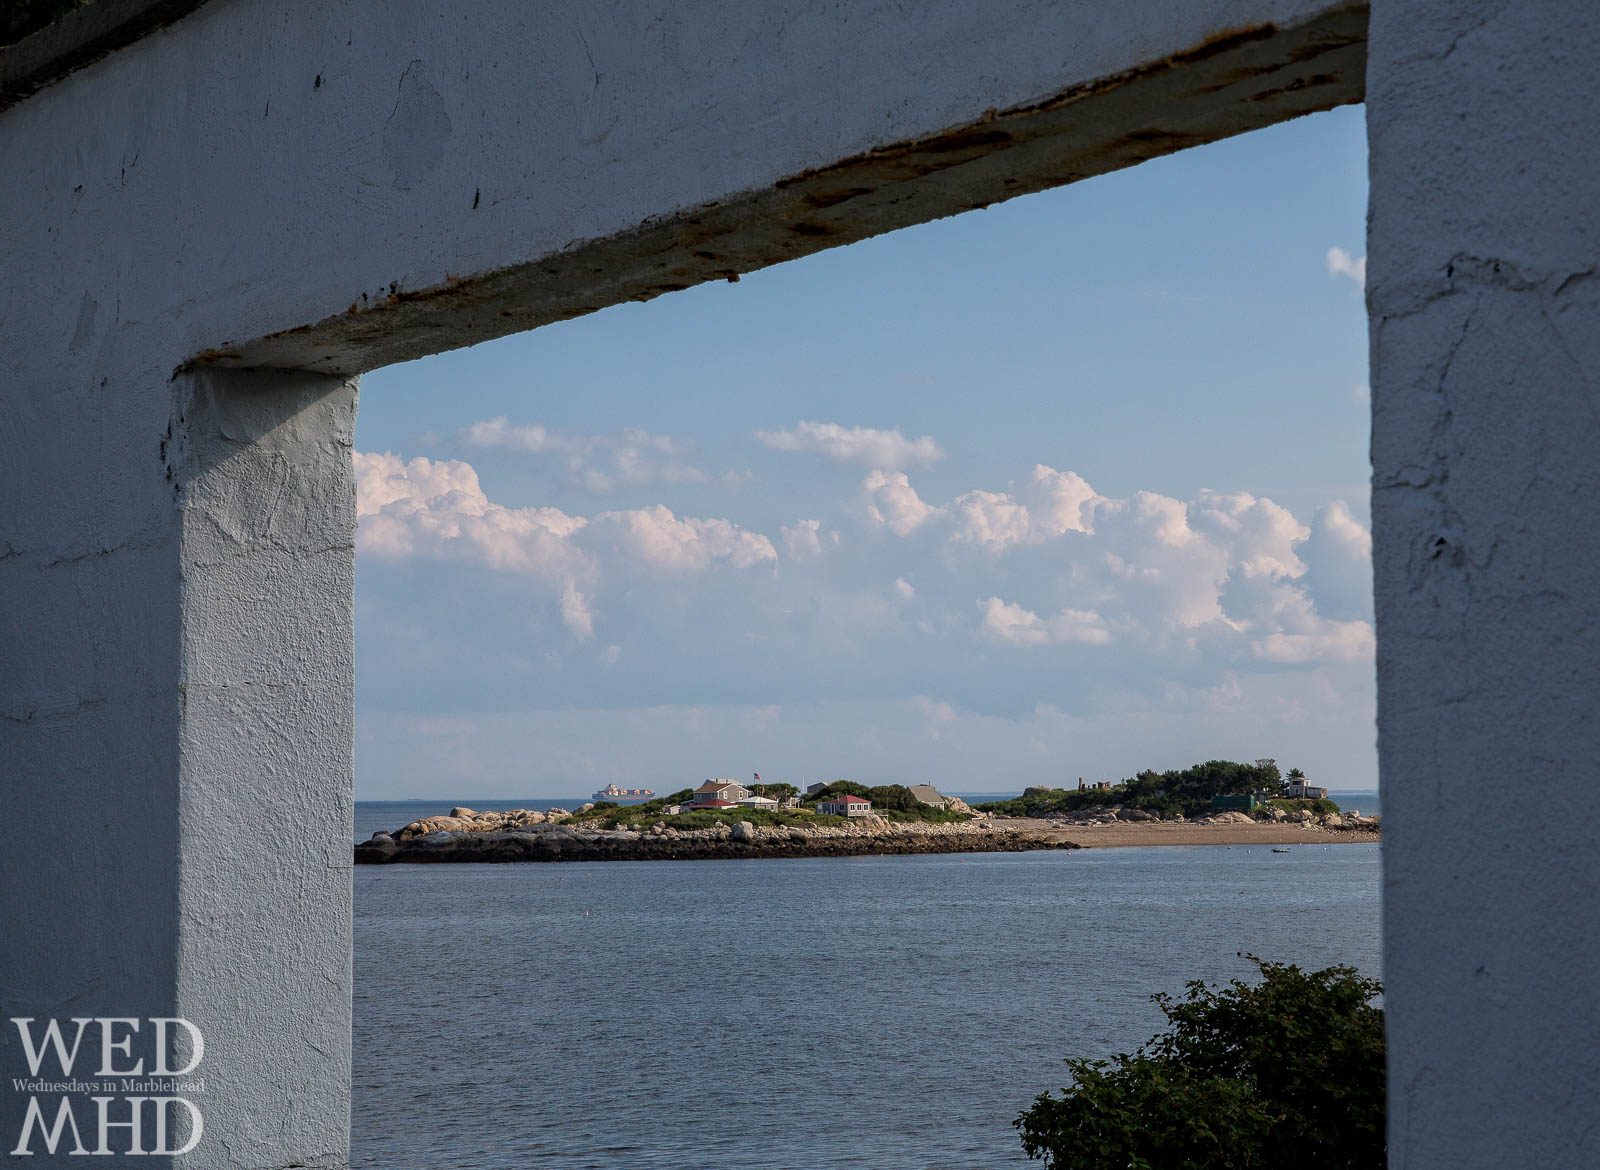 An archway frames this view of Tinker's Island